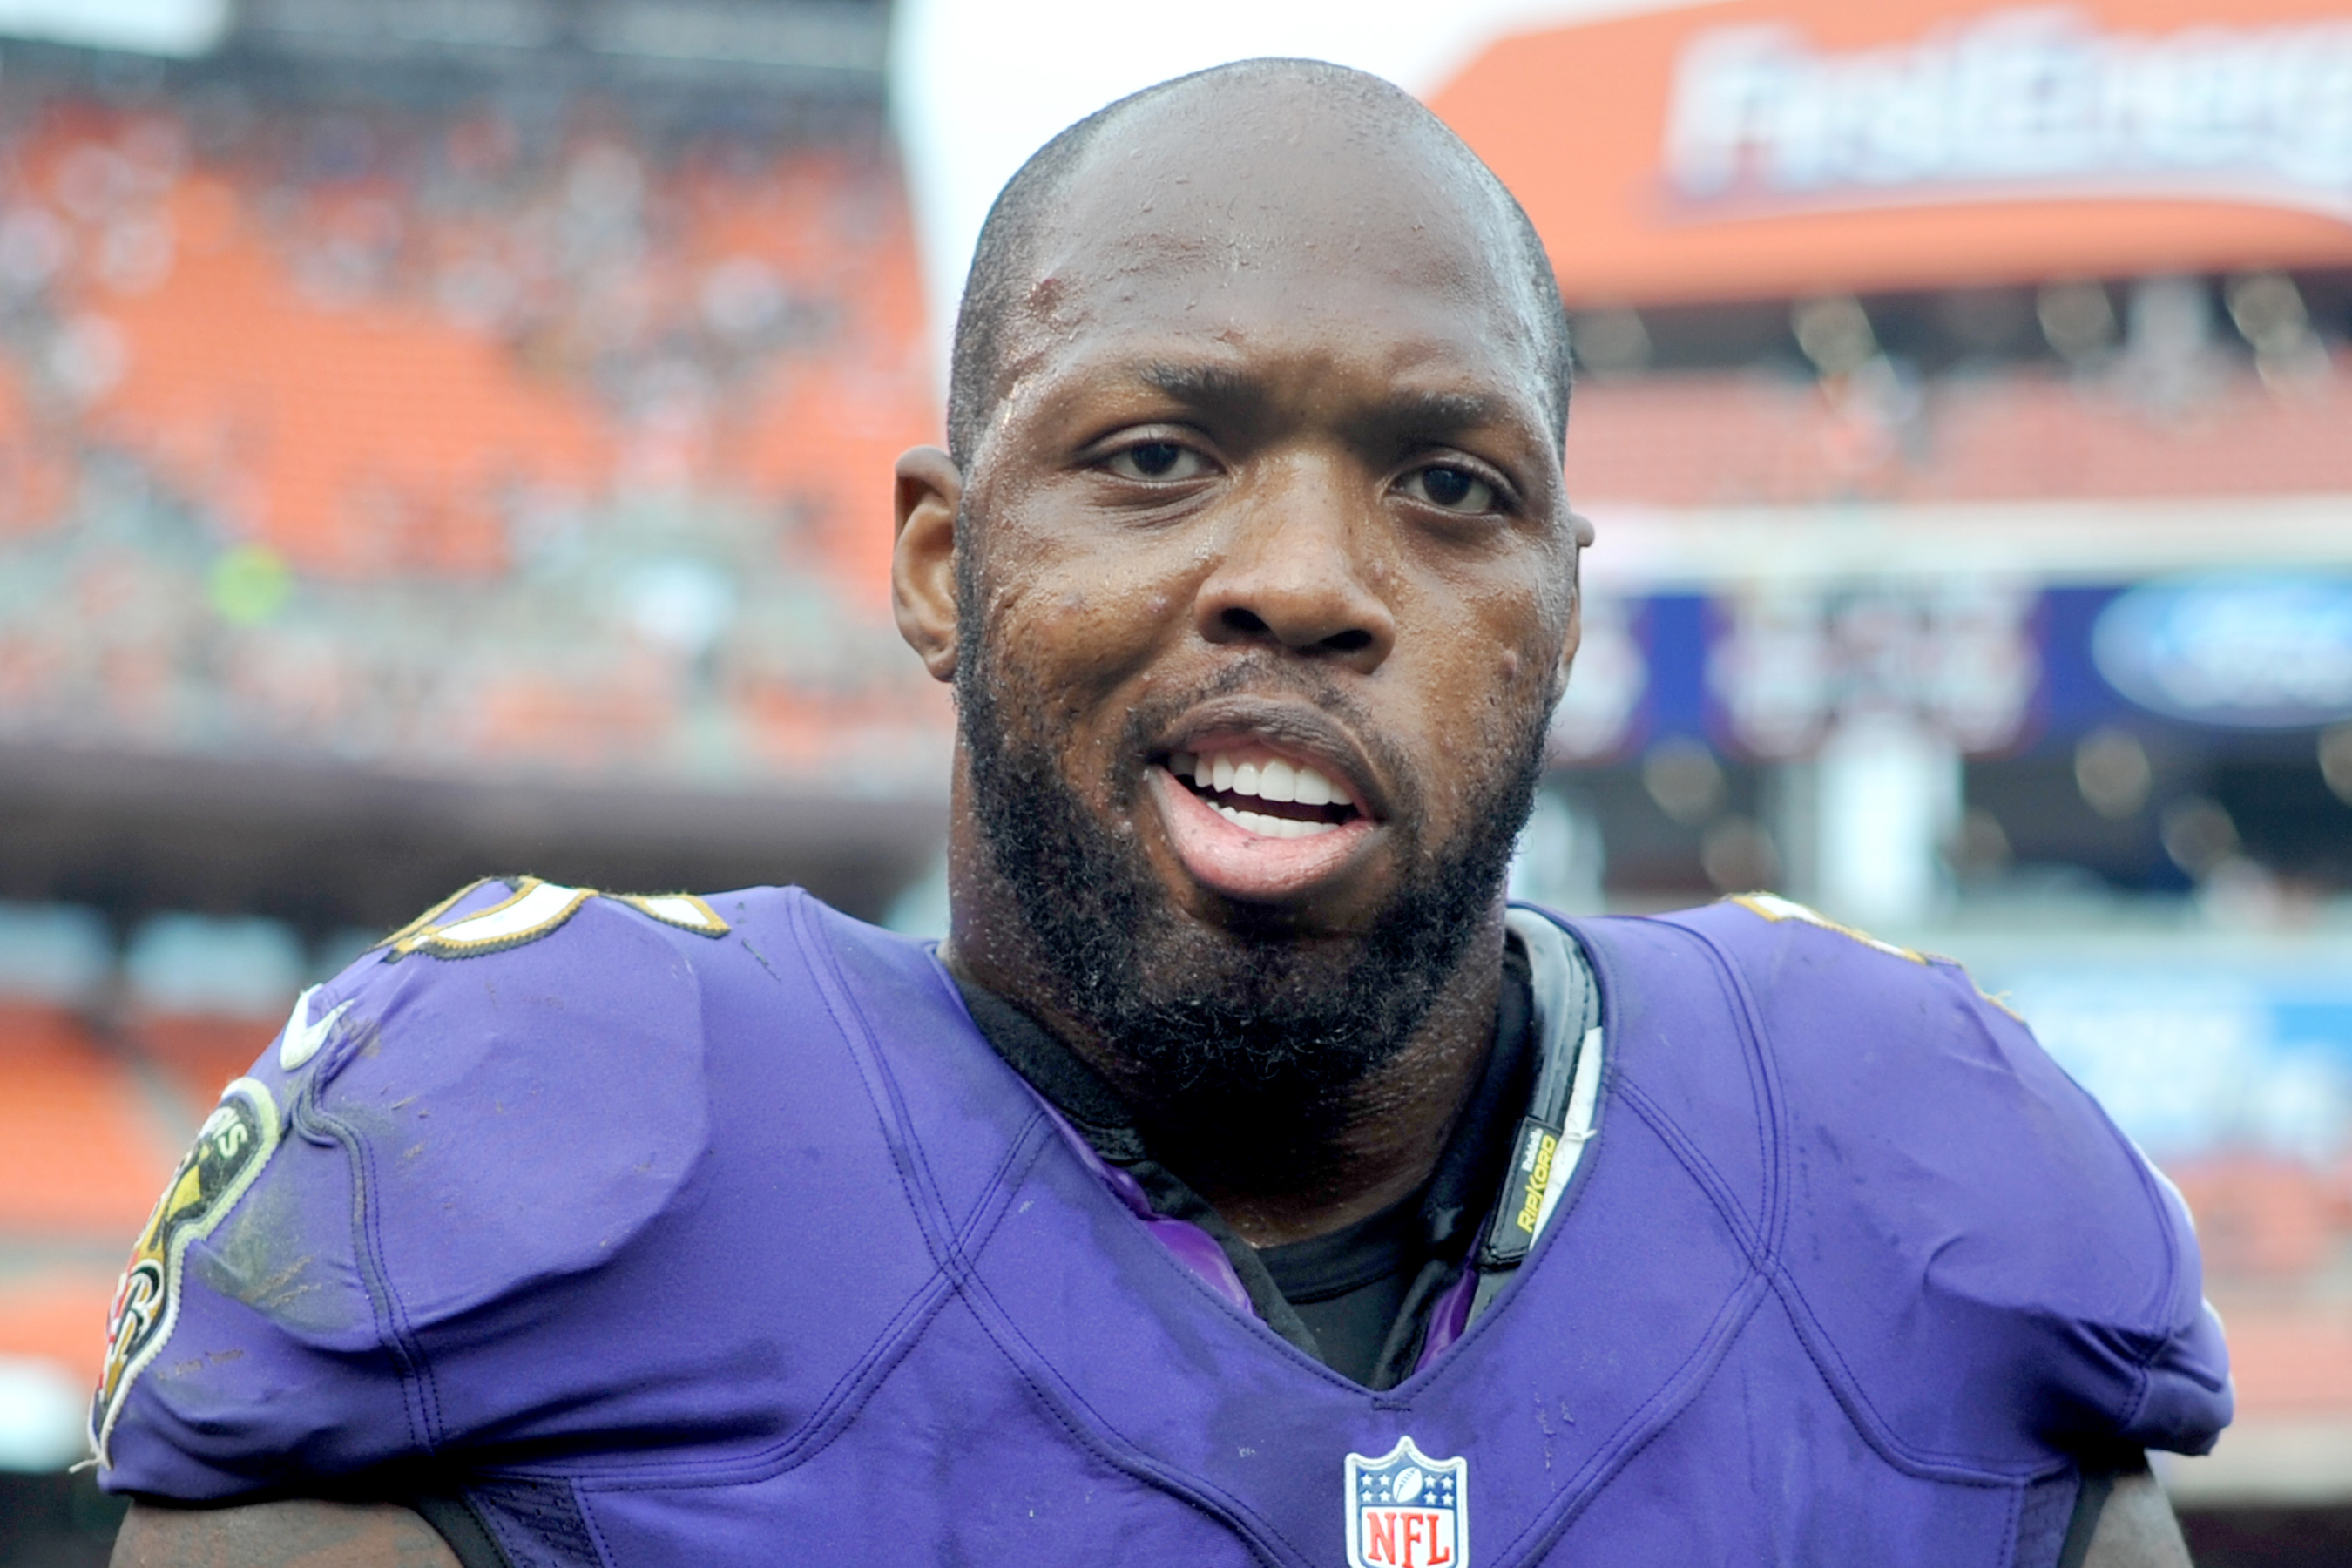 Watch Terrell Suggs posed as a reporter to have a little fun with